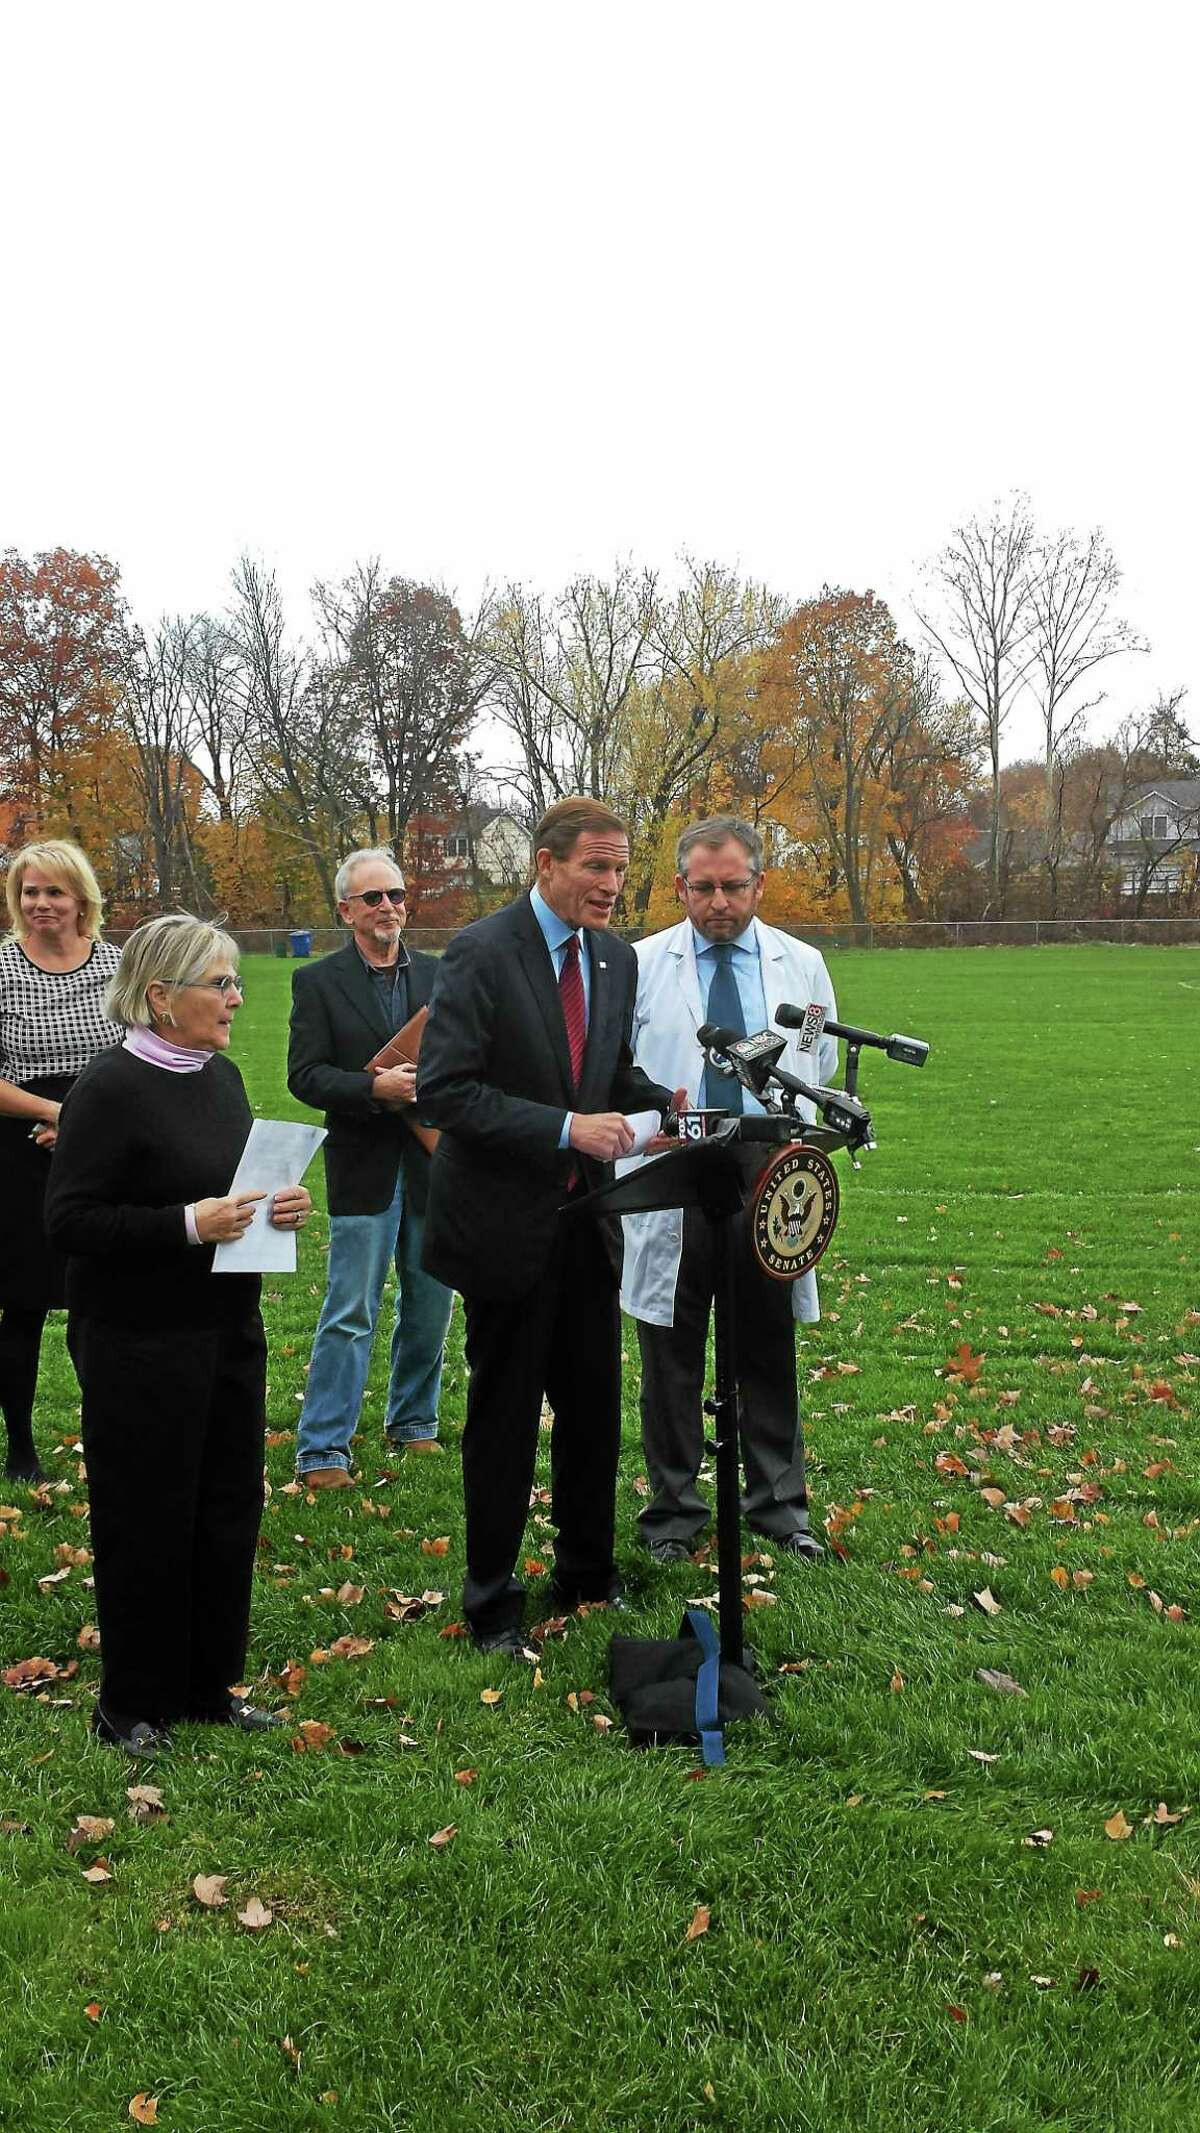 U.S. Sen. Richard Blumenthal , D-Conn., is joined by Nancy Alderman, left, of Environment and Health Inc. and Dr. Homero Horari of Mount Sinai Hospital in New York City to discuss concerns of crumb rubber pieces in synthetic turf fields Friday in West Hartford.